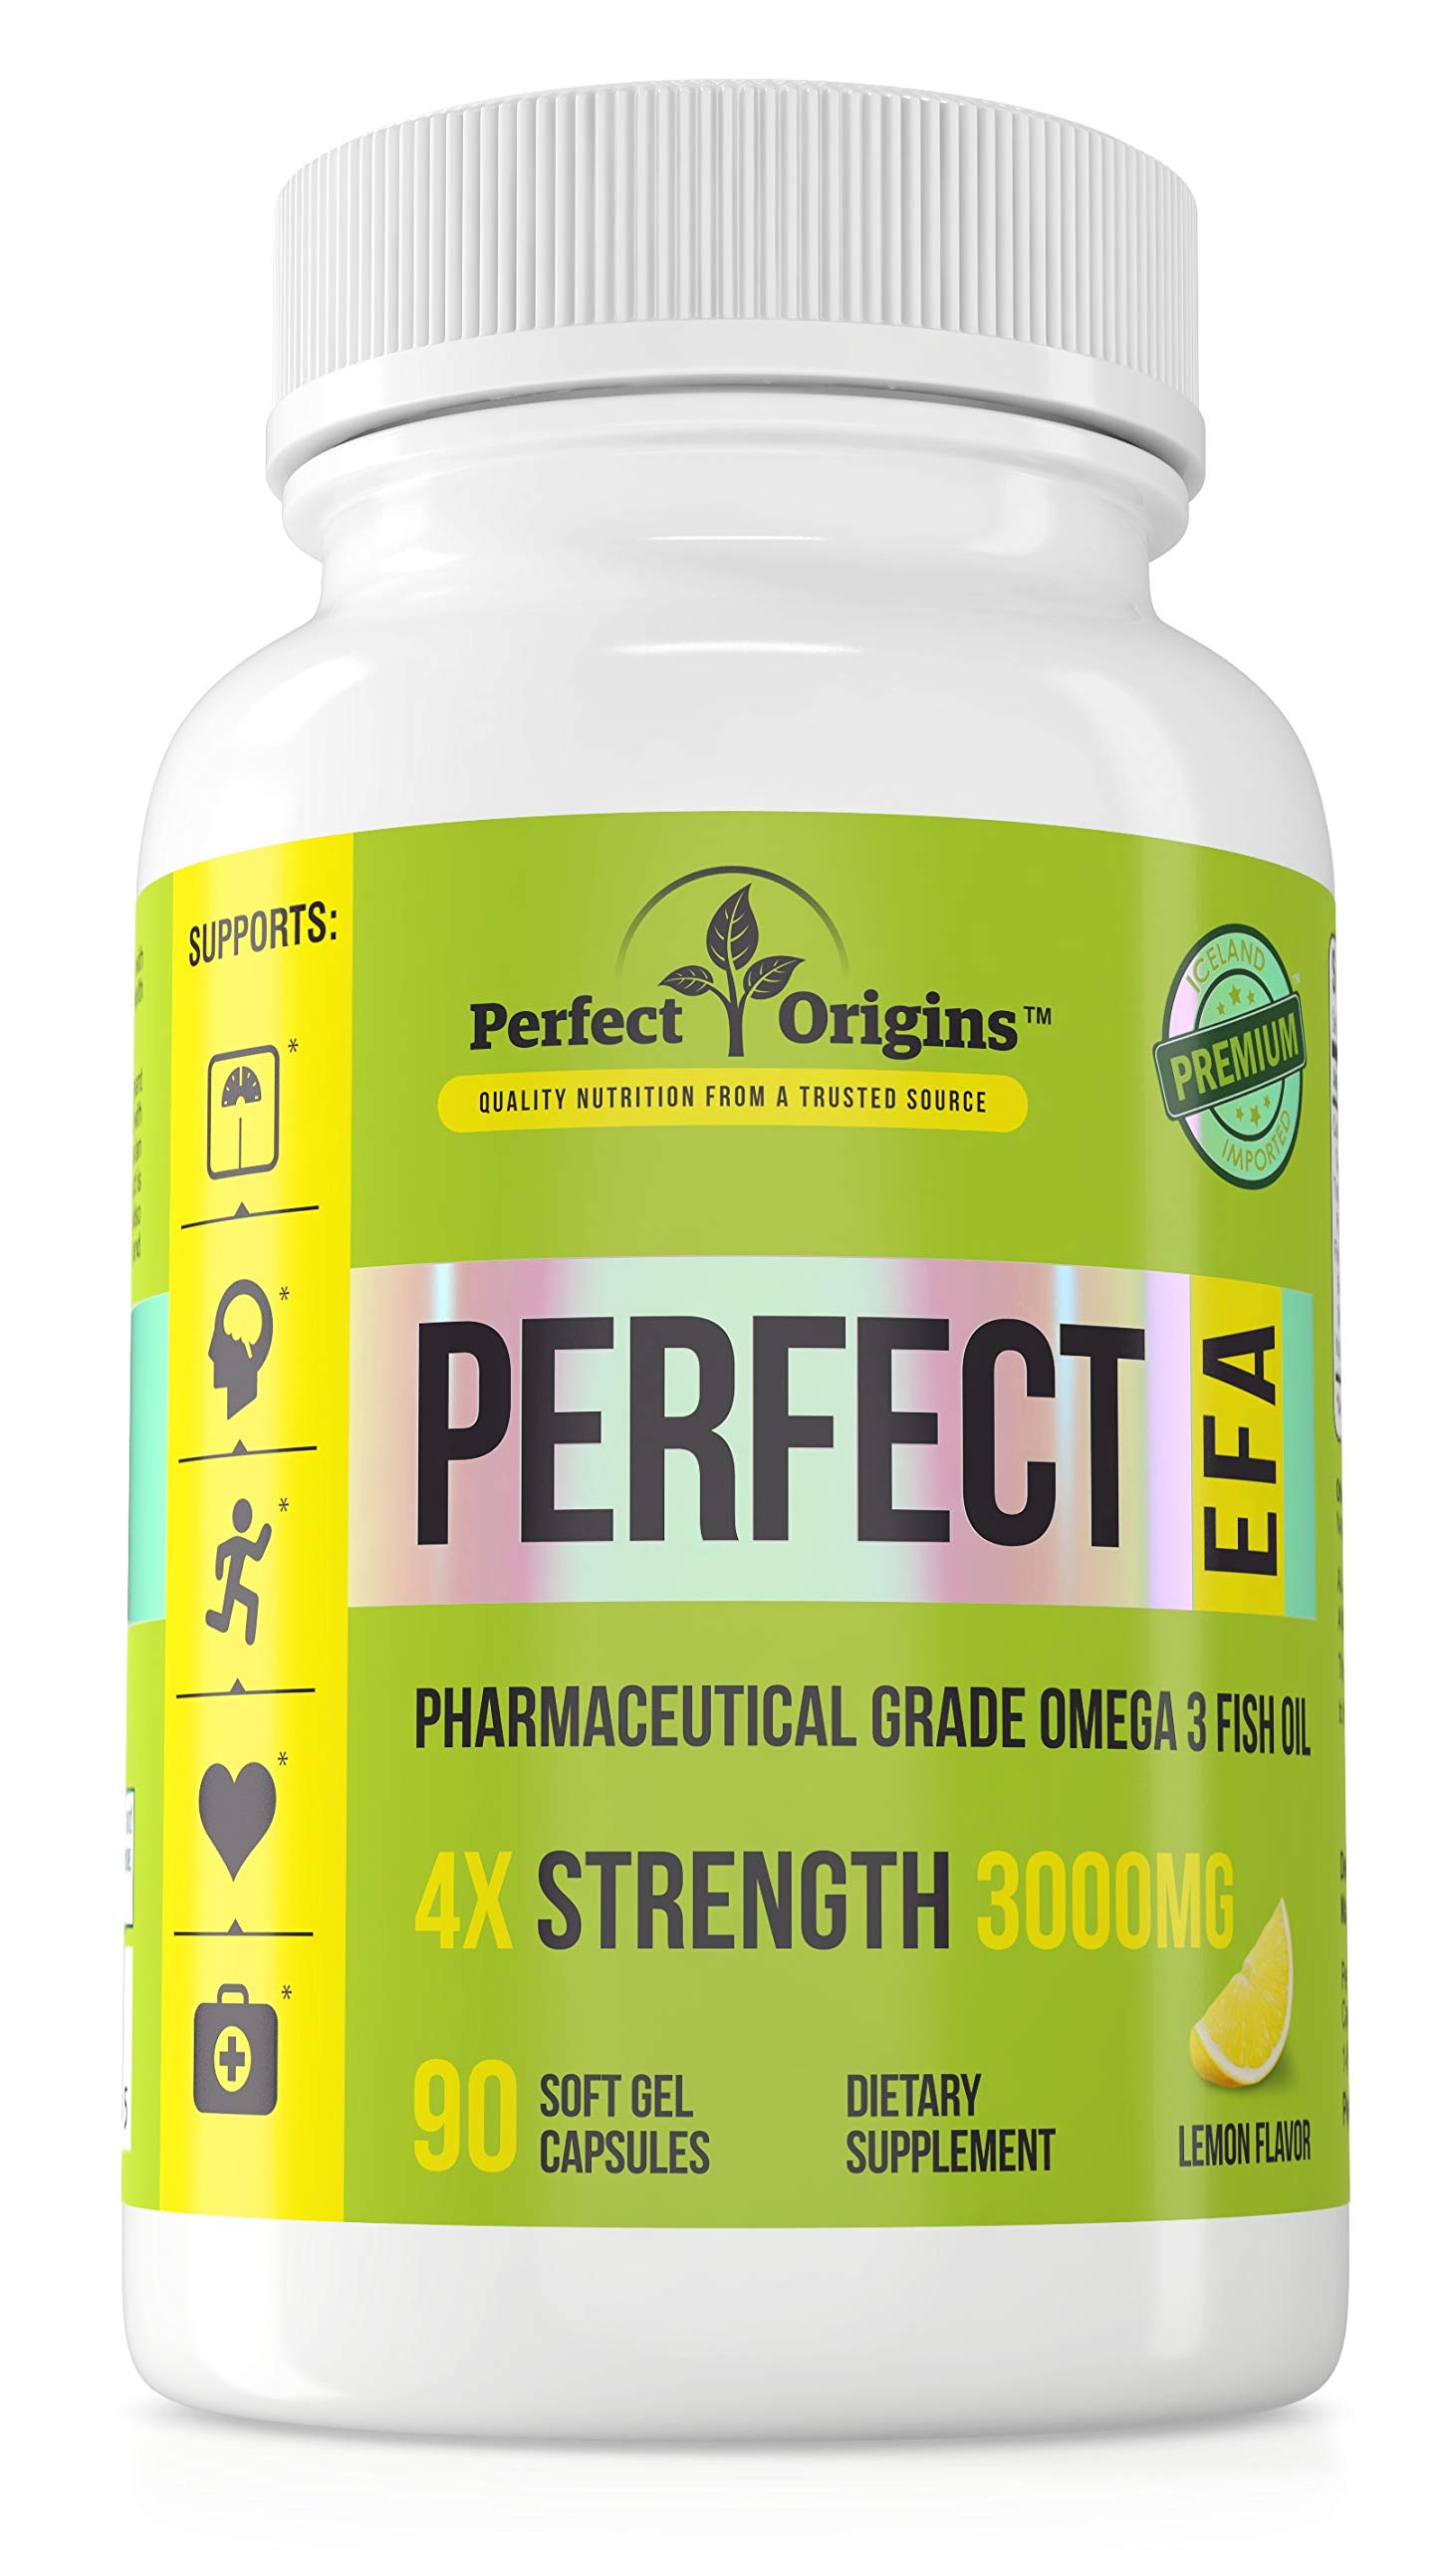 Perfect Origins Perfect EFA, High-Strength Omega 3 for Metabolism, Liver, Thyroid, Heart, Cholesterol, Joints, and Mood by Perfect Origins